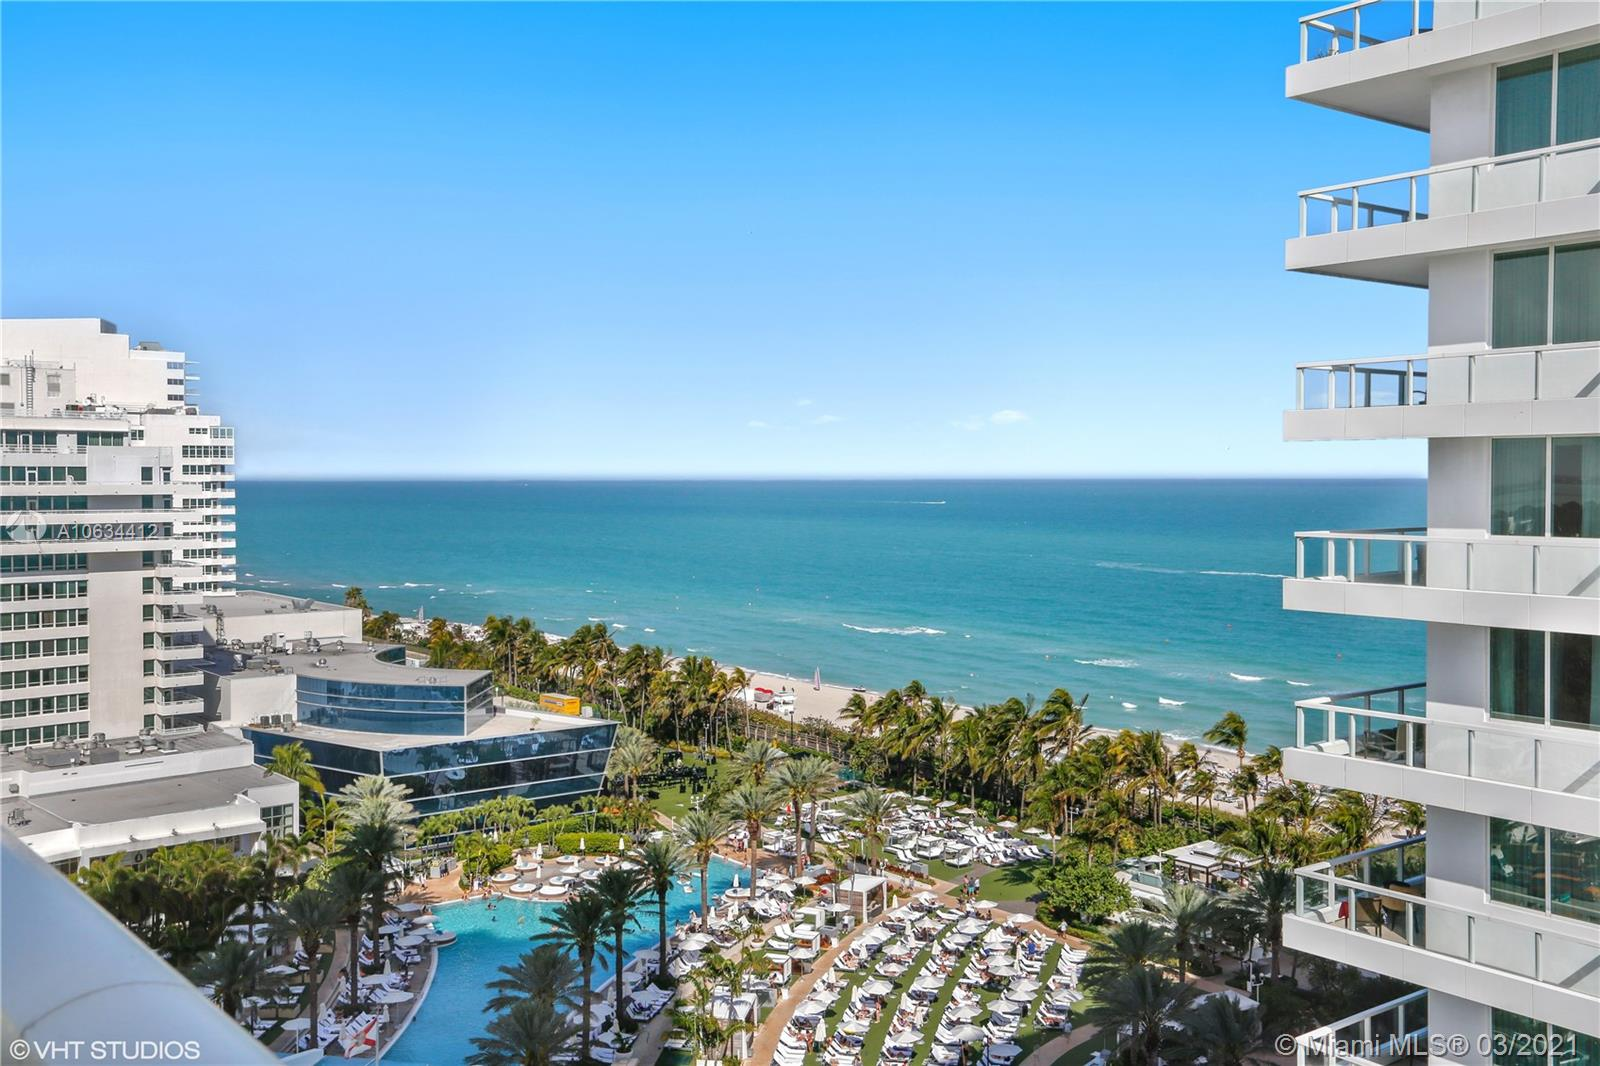 Beautiful Jr Suite w/ocean & city views at Fontainebleau II. Enjoy full service, vacation-style living in a furnished turnkey unit with ample closet space and balcony. This unit comfortably sleeps four with a king bed, living area with sleeper sofa and kitchenette. Enroll in hotel rental program & receive income while away! The Fontainebleau Resort offers luxury amenities on 22 oceanfront acres including award-winning restaurants, LIV night club, Lapis spa & state-of-the-art fitness center. Maintenance includes: AC, local calls, electricity, valet + daily free breakfast in the owner's lounge.